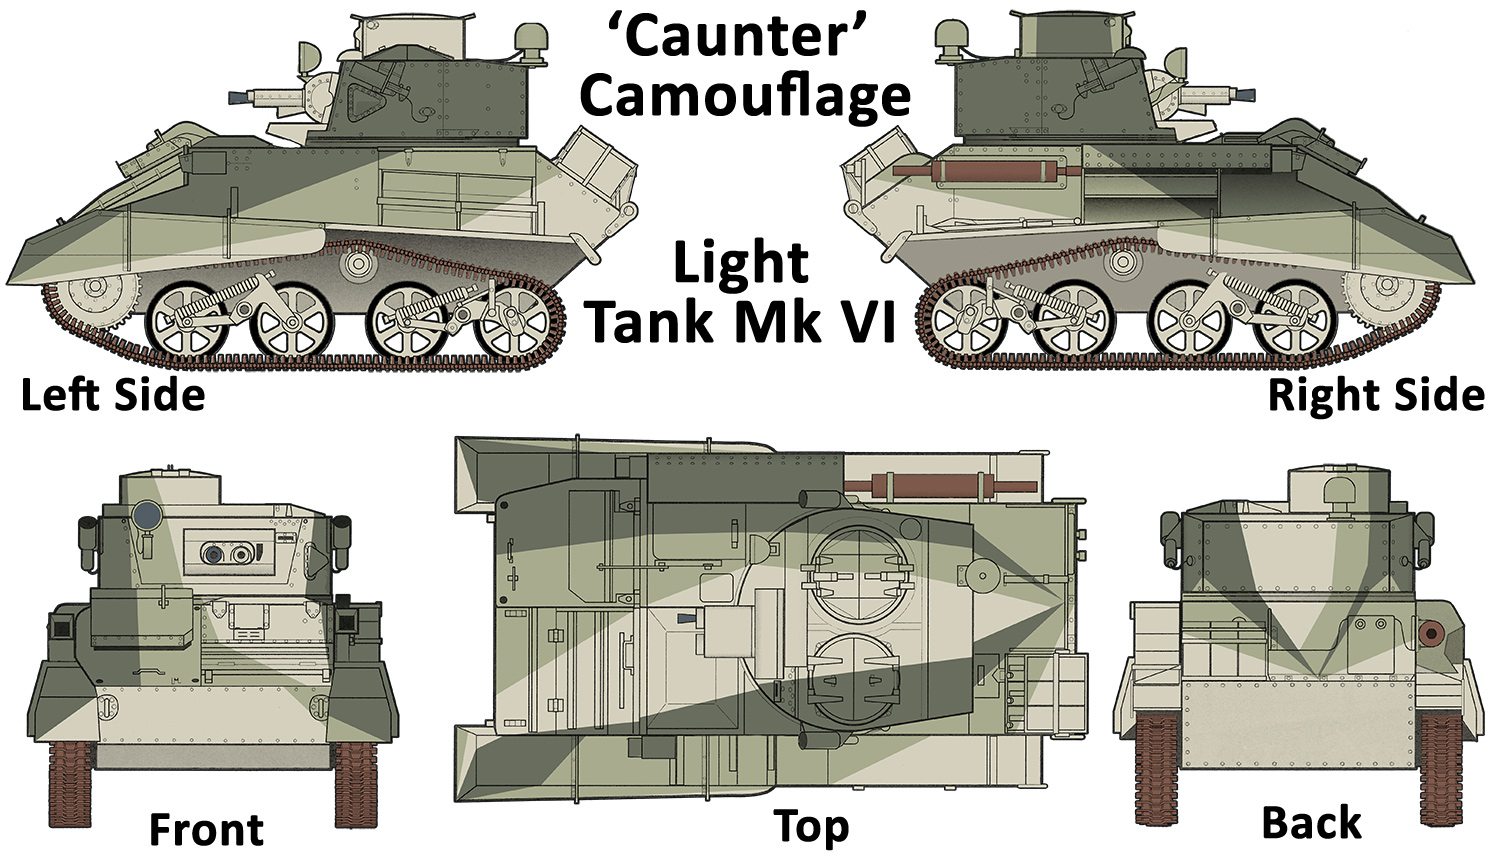 'Caunter' Camouflage Light Tank Mk VI